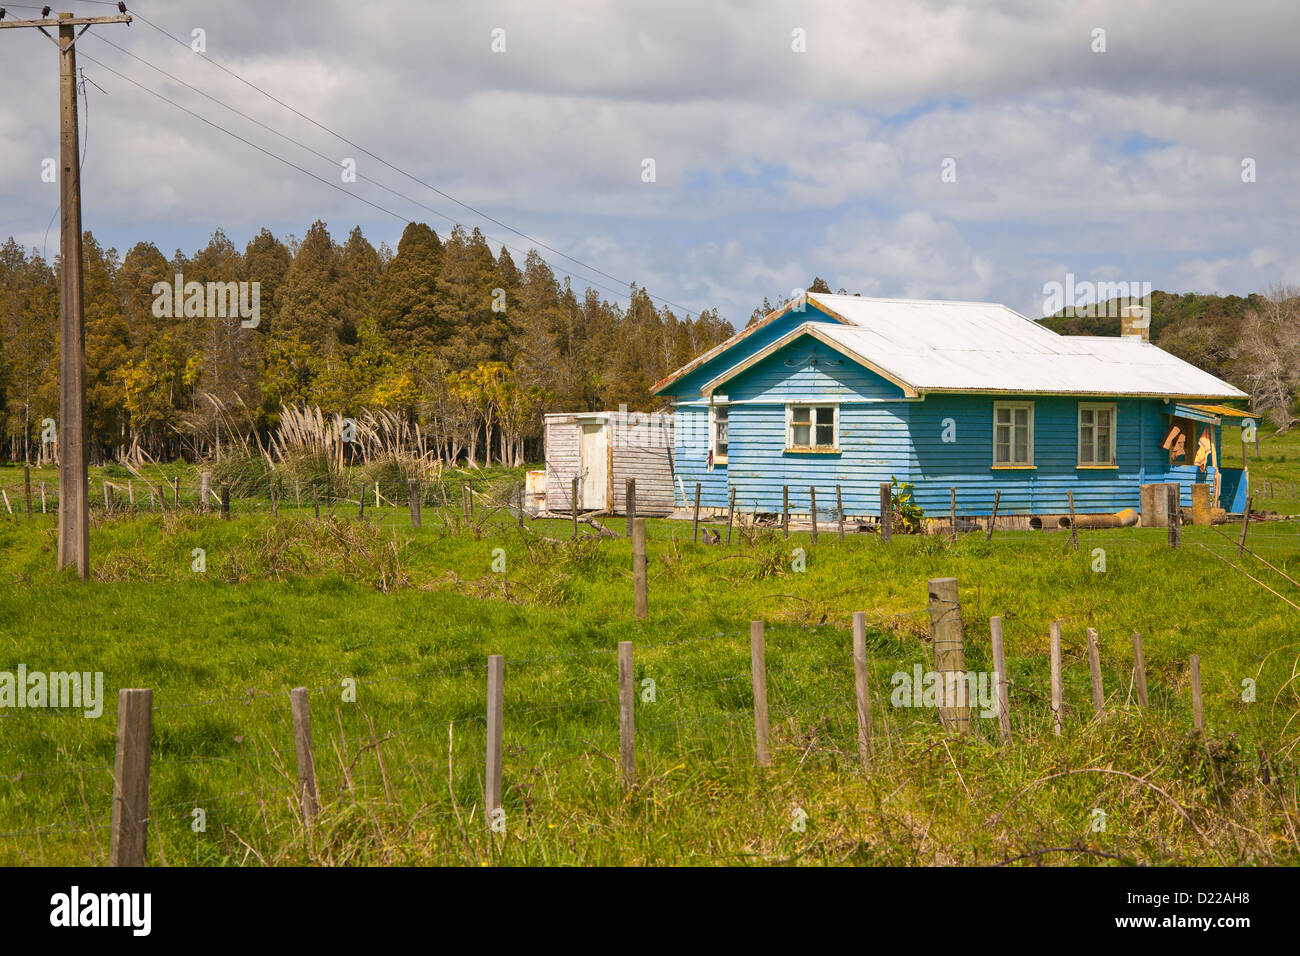 An old colourful, single storey wooden house in rural Canterbury, South Island, New Zealand. Stock Photo